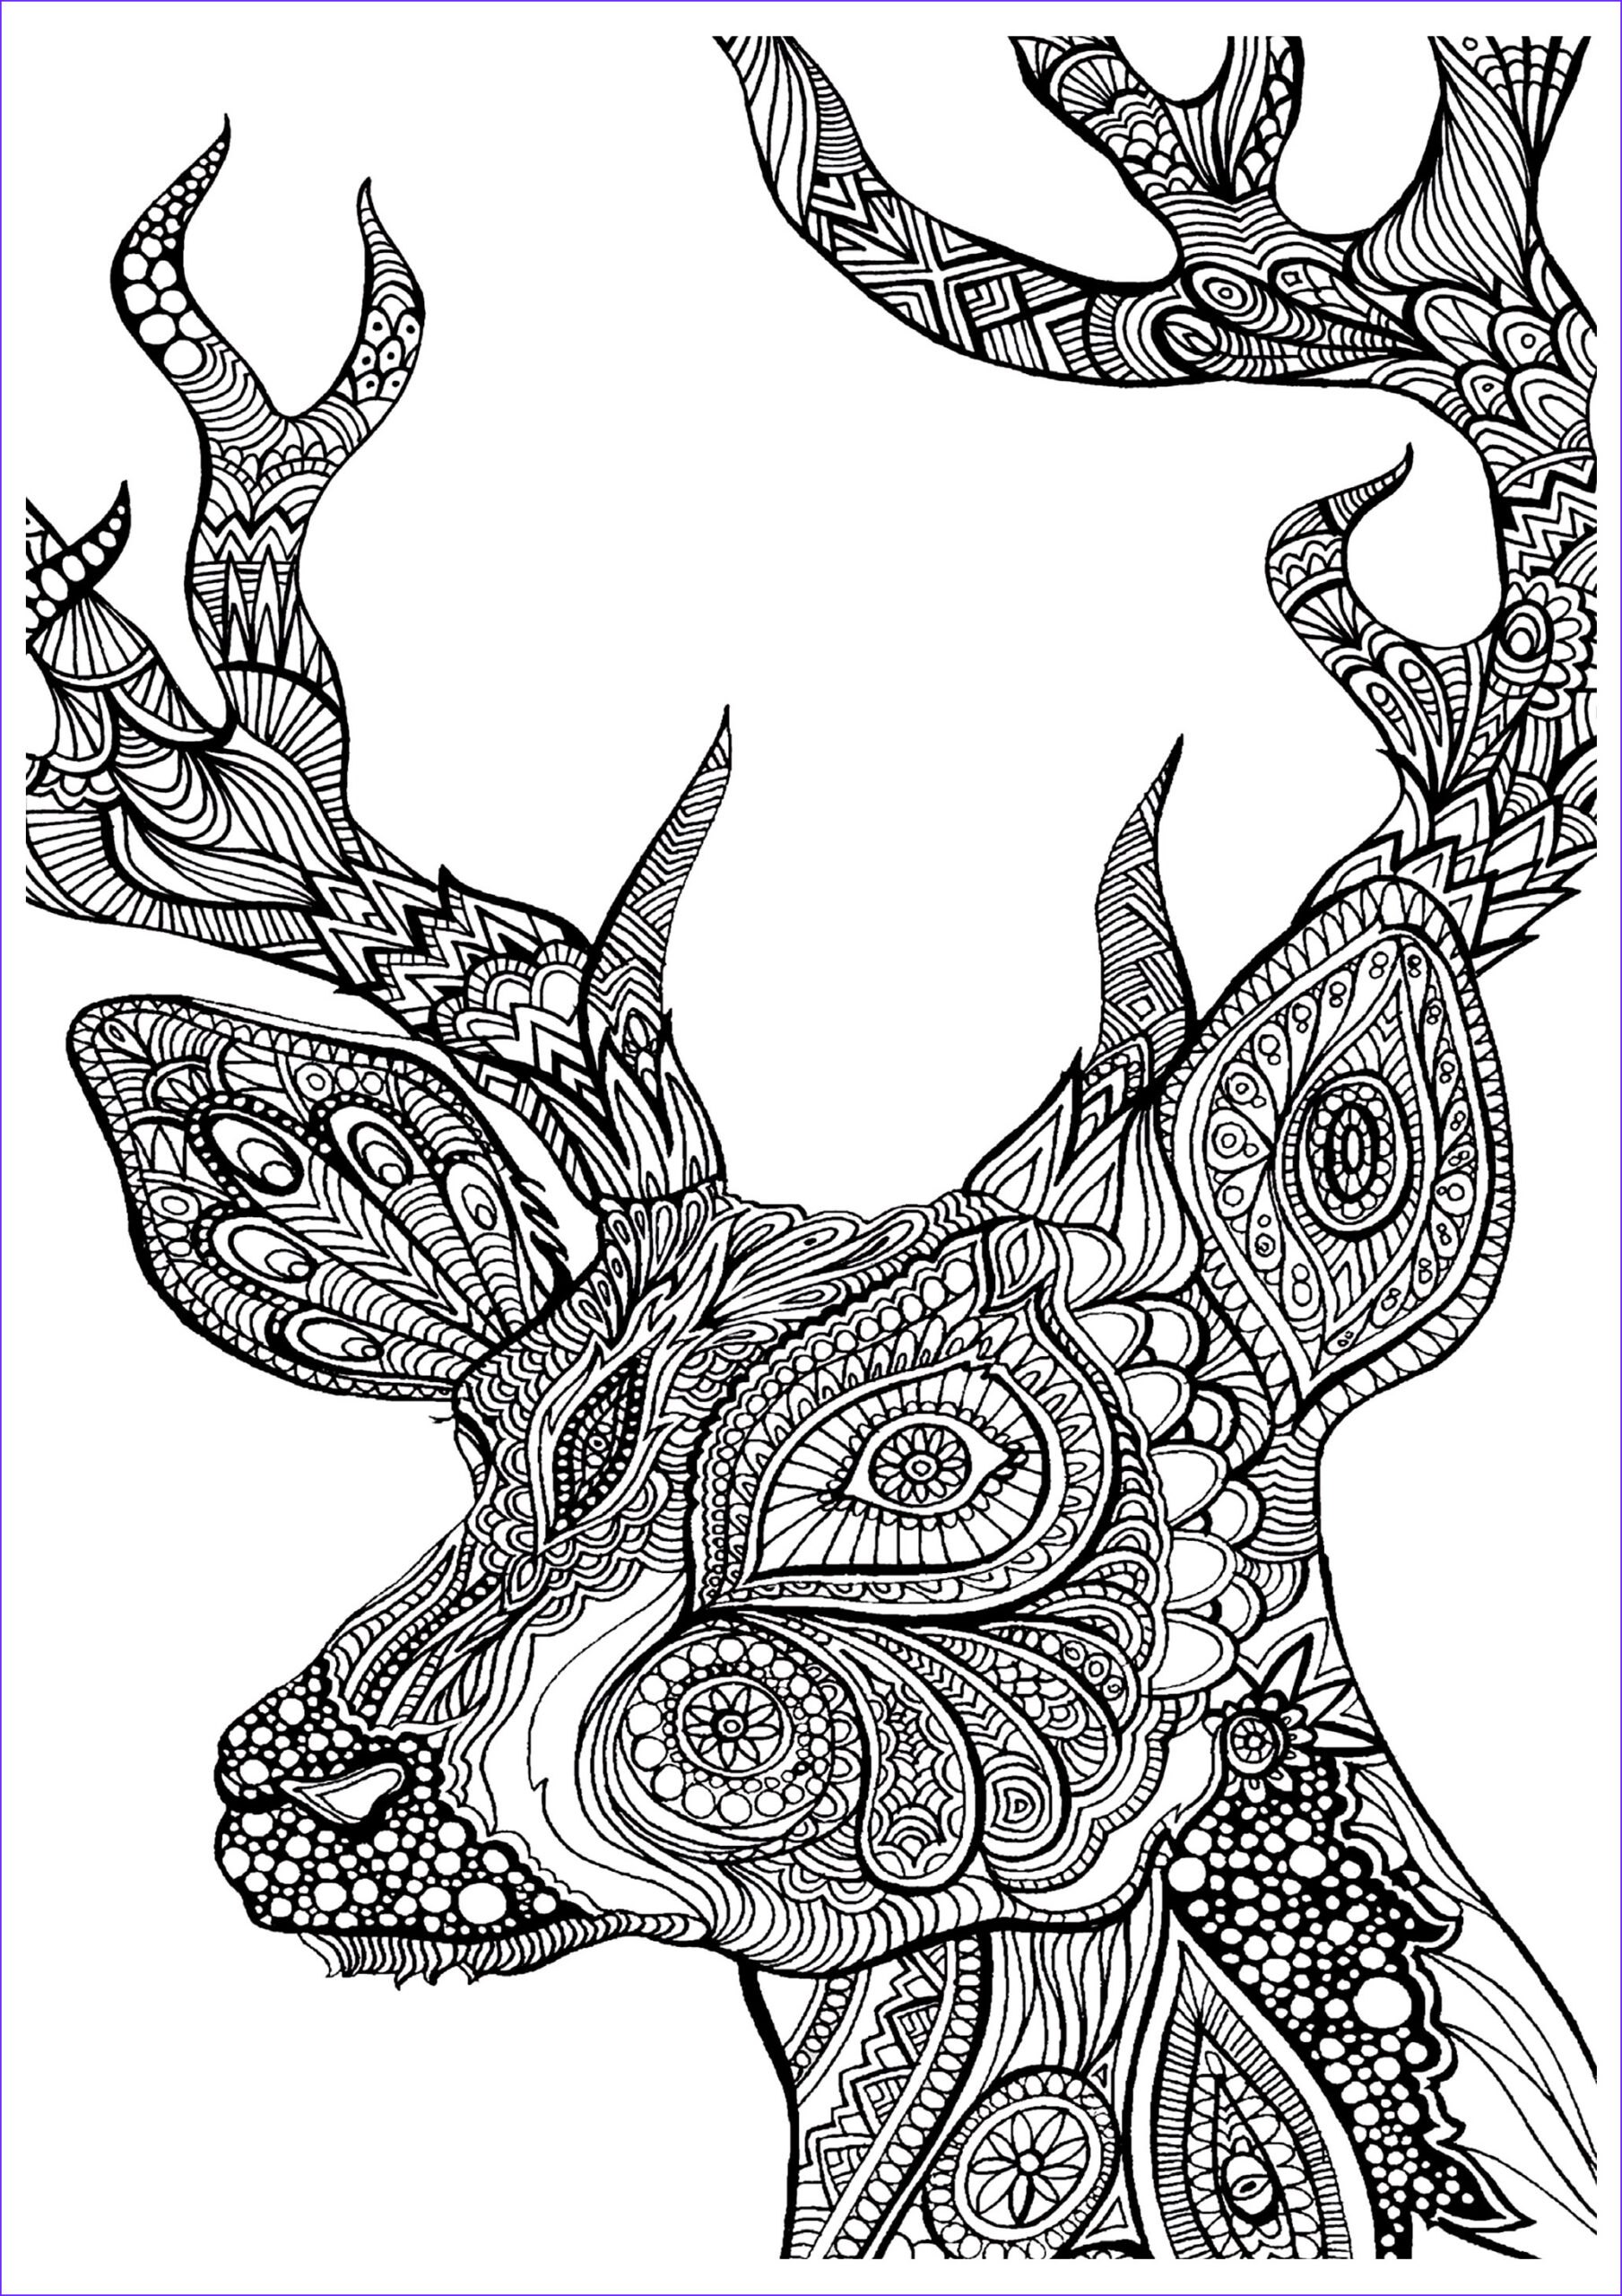 Free Adult Coloring Pages Inspirational Photography 19 Of The Best Adult Colouring Pages Free Printables For